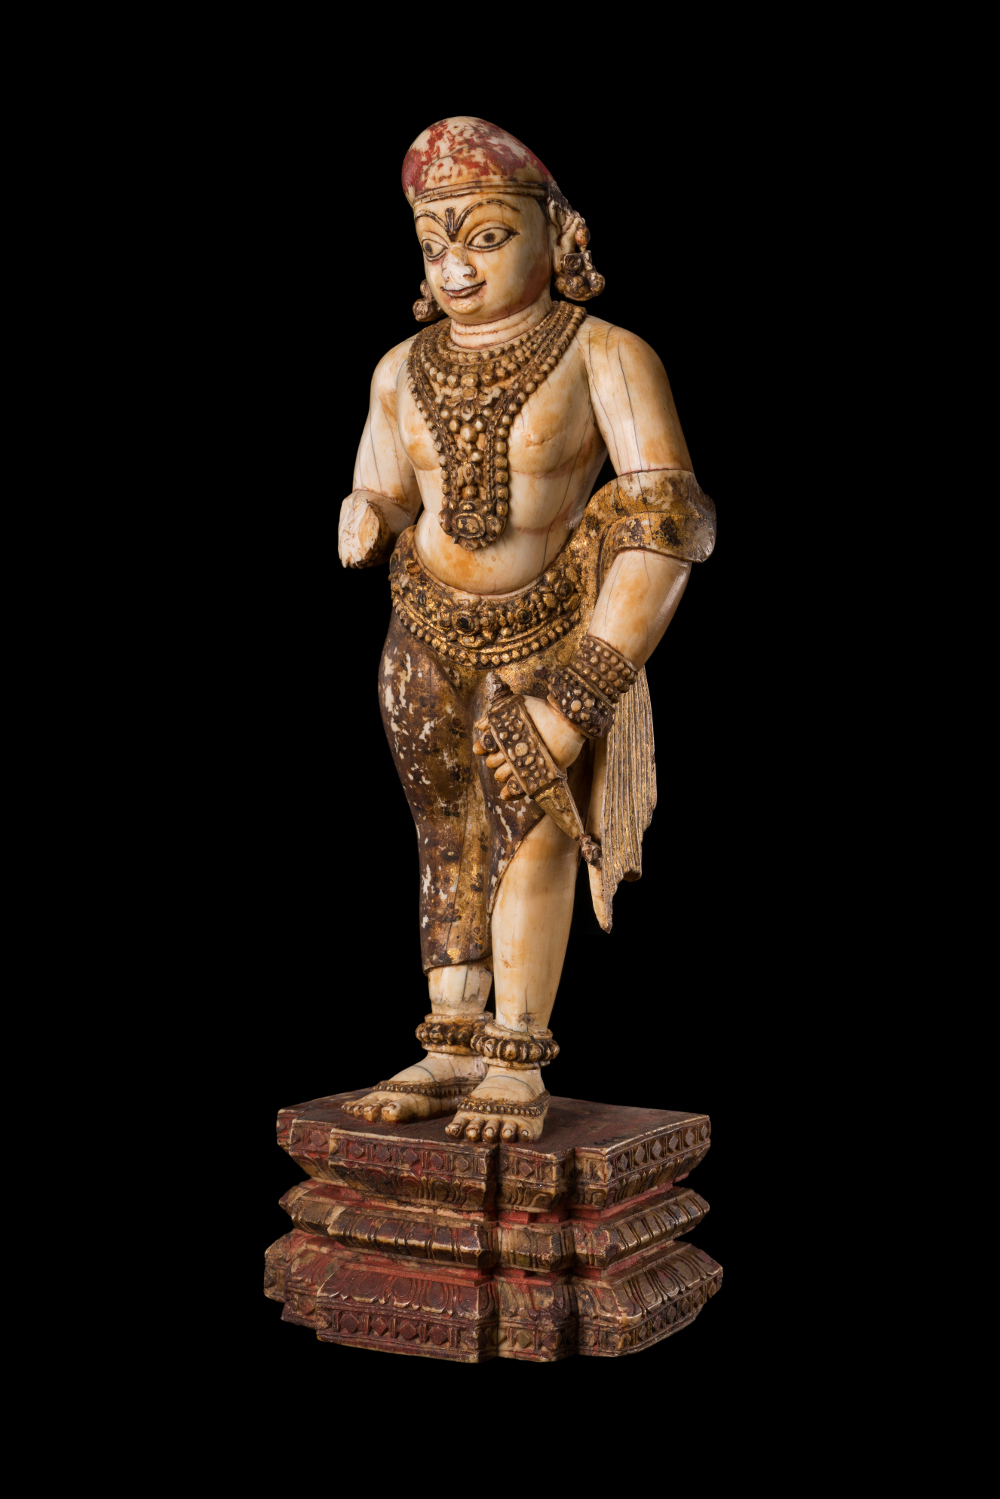 Portrait of a Nayaka king  - Portrait of a Nayaka kingIvoryAD 1600–1700Madurai, Tamil Nadu, IndiaCSMVS, MumbaiThis small ivory statuette might come from a lavish private temple of one of the Nayaka families. He holds a baku, a horn-shaped weapon that was commonly carried concealed in the sleeve. The Nayaka dynasties ruled a series of kingdoms across south India in the seventeenth century. Monumental portraits of Nayaka kings were placed in temple hallways where the worshipping public would note the devotion of the king and see him as also being blessed by the deity. This elegant ankusha (below)is used for controlling elephants either on foot or when mounted, but it is also a symbol of royalty in south India.